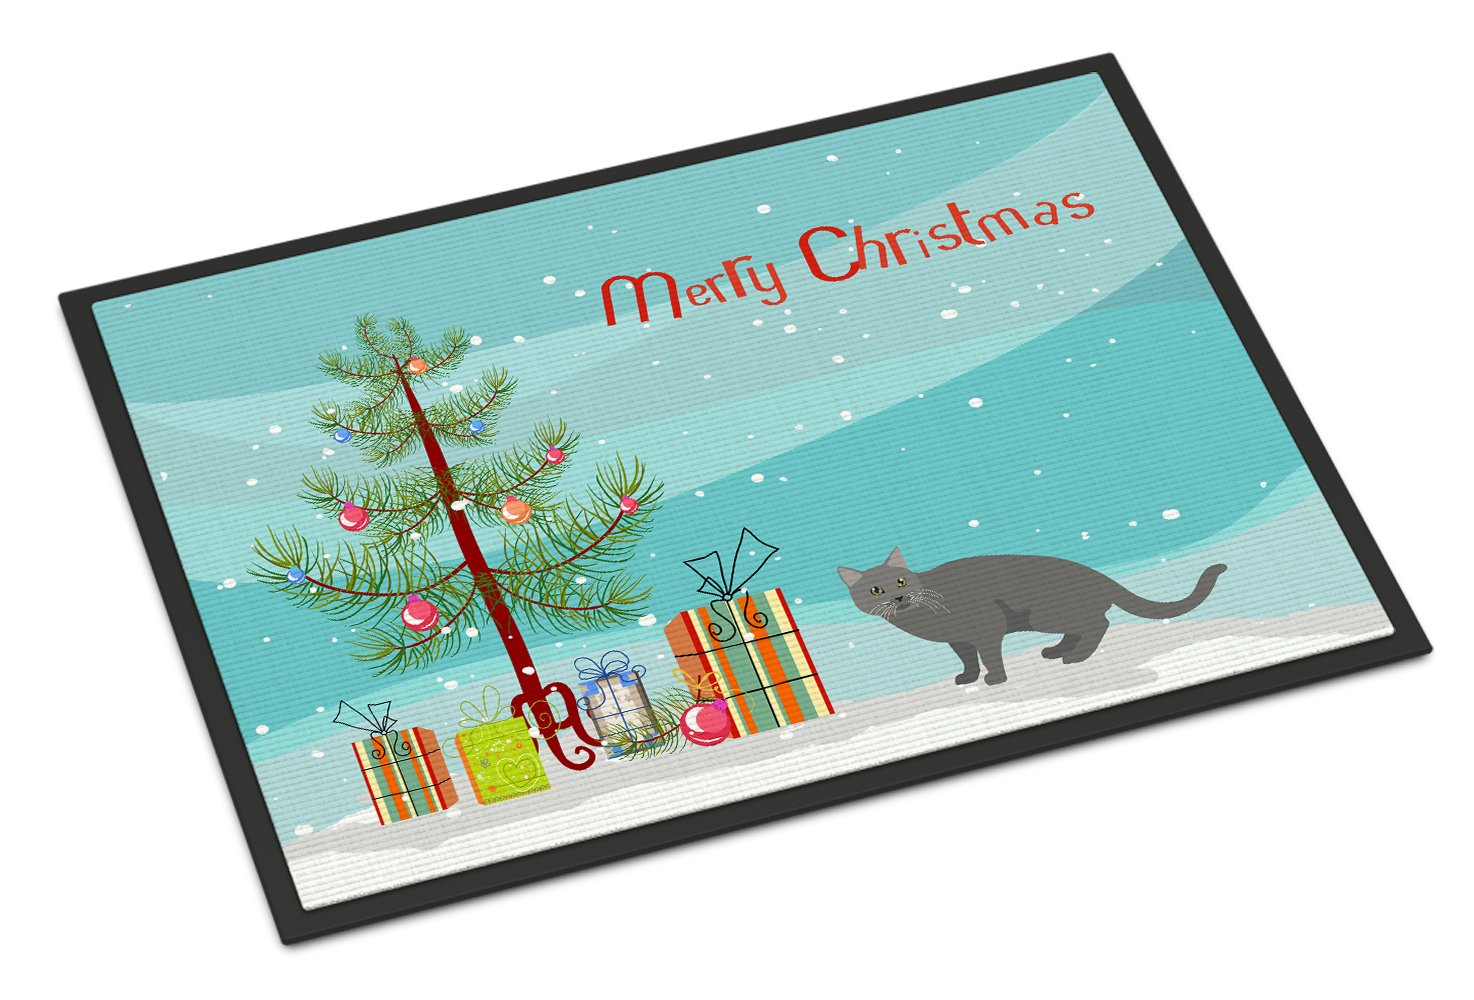 Chartreux #1 Cat Merry Christmas Indoor or Outdoor Mat 24x36 CK4582JMAT by Caroline's Treasures